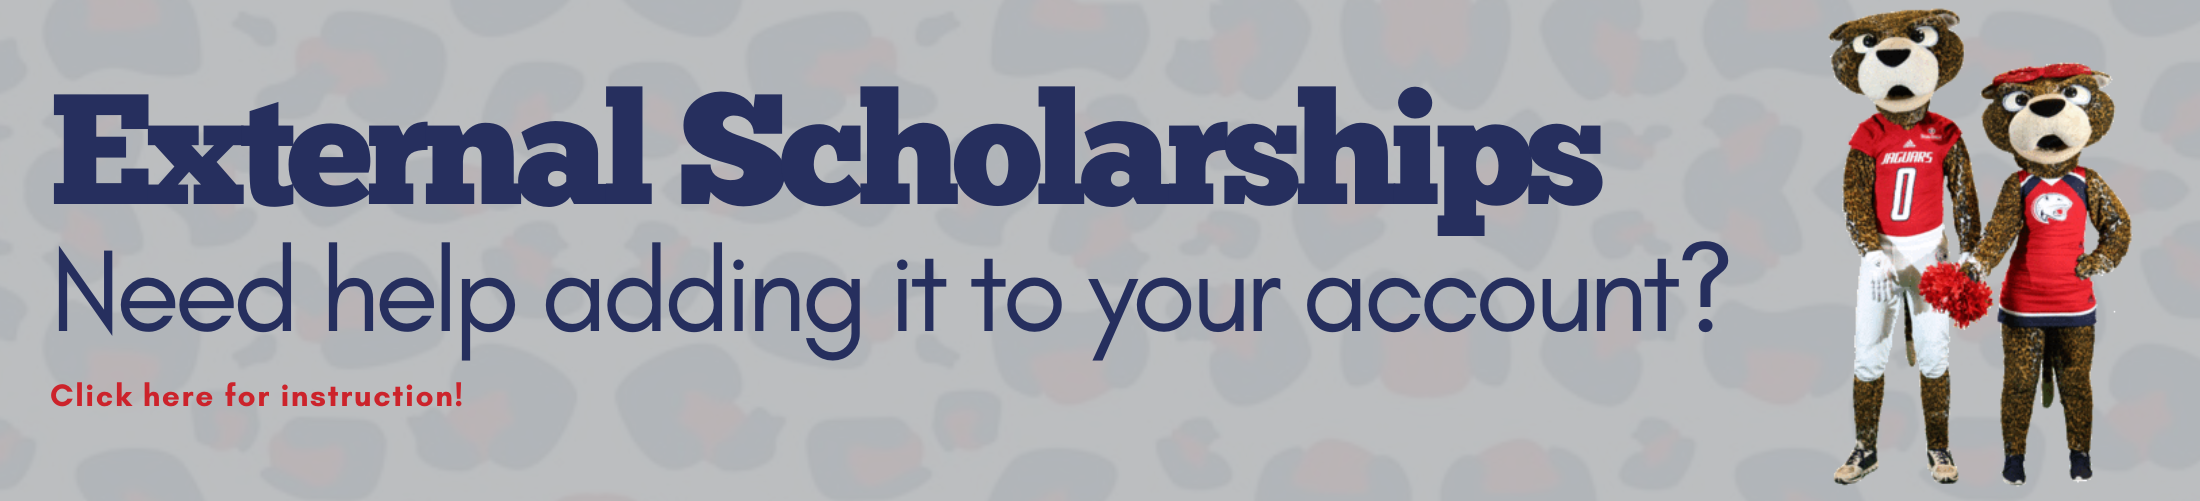 External Scholarships Need help adding it to your account? Click here for instruction!